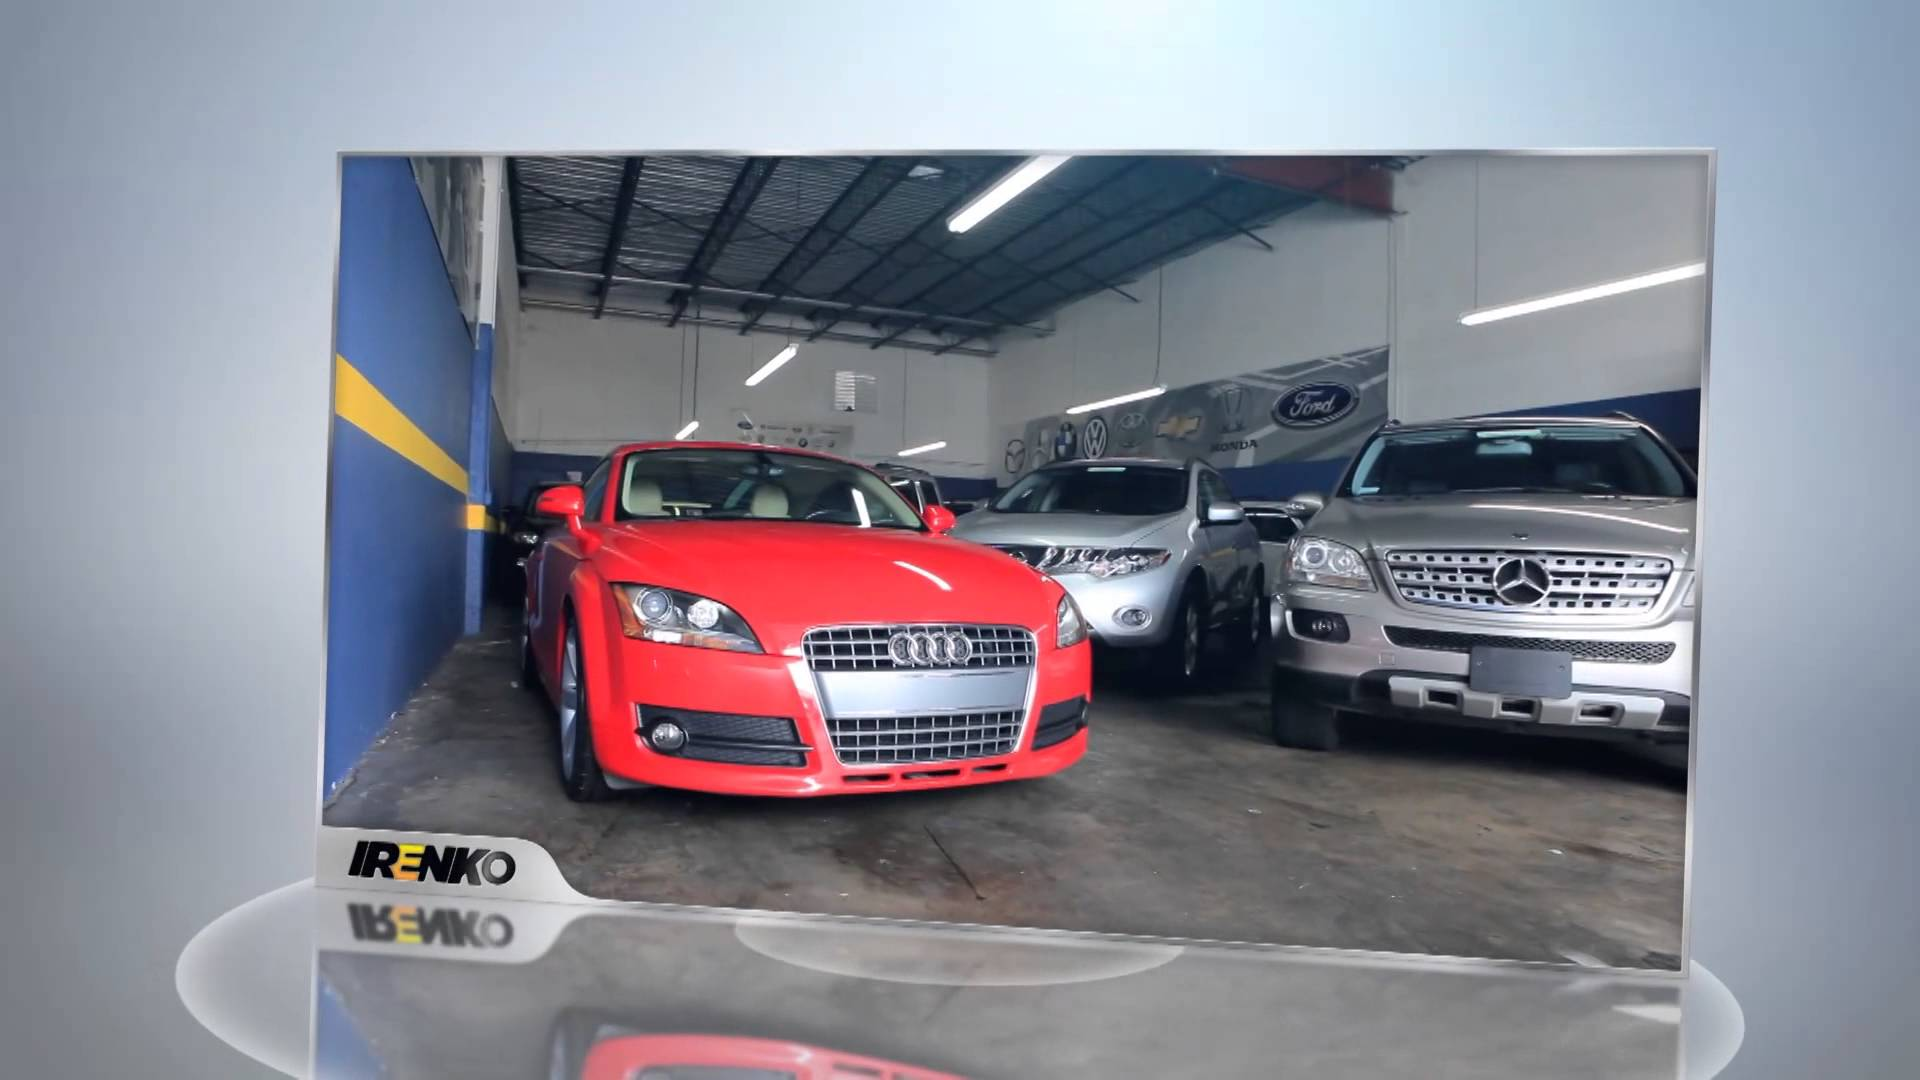 dealer venezolano here pay here dealer miami used cars dealer doral irenko uto sales miami